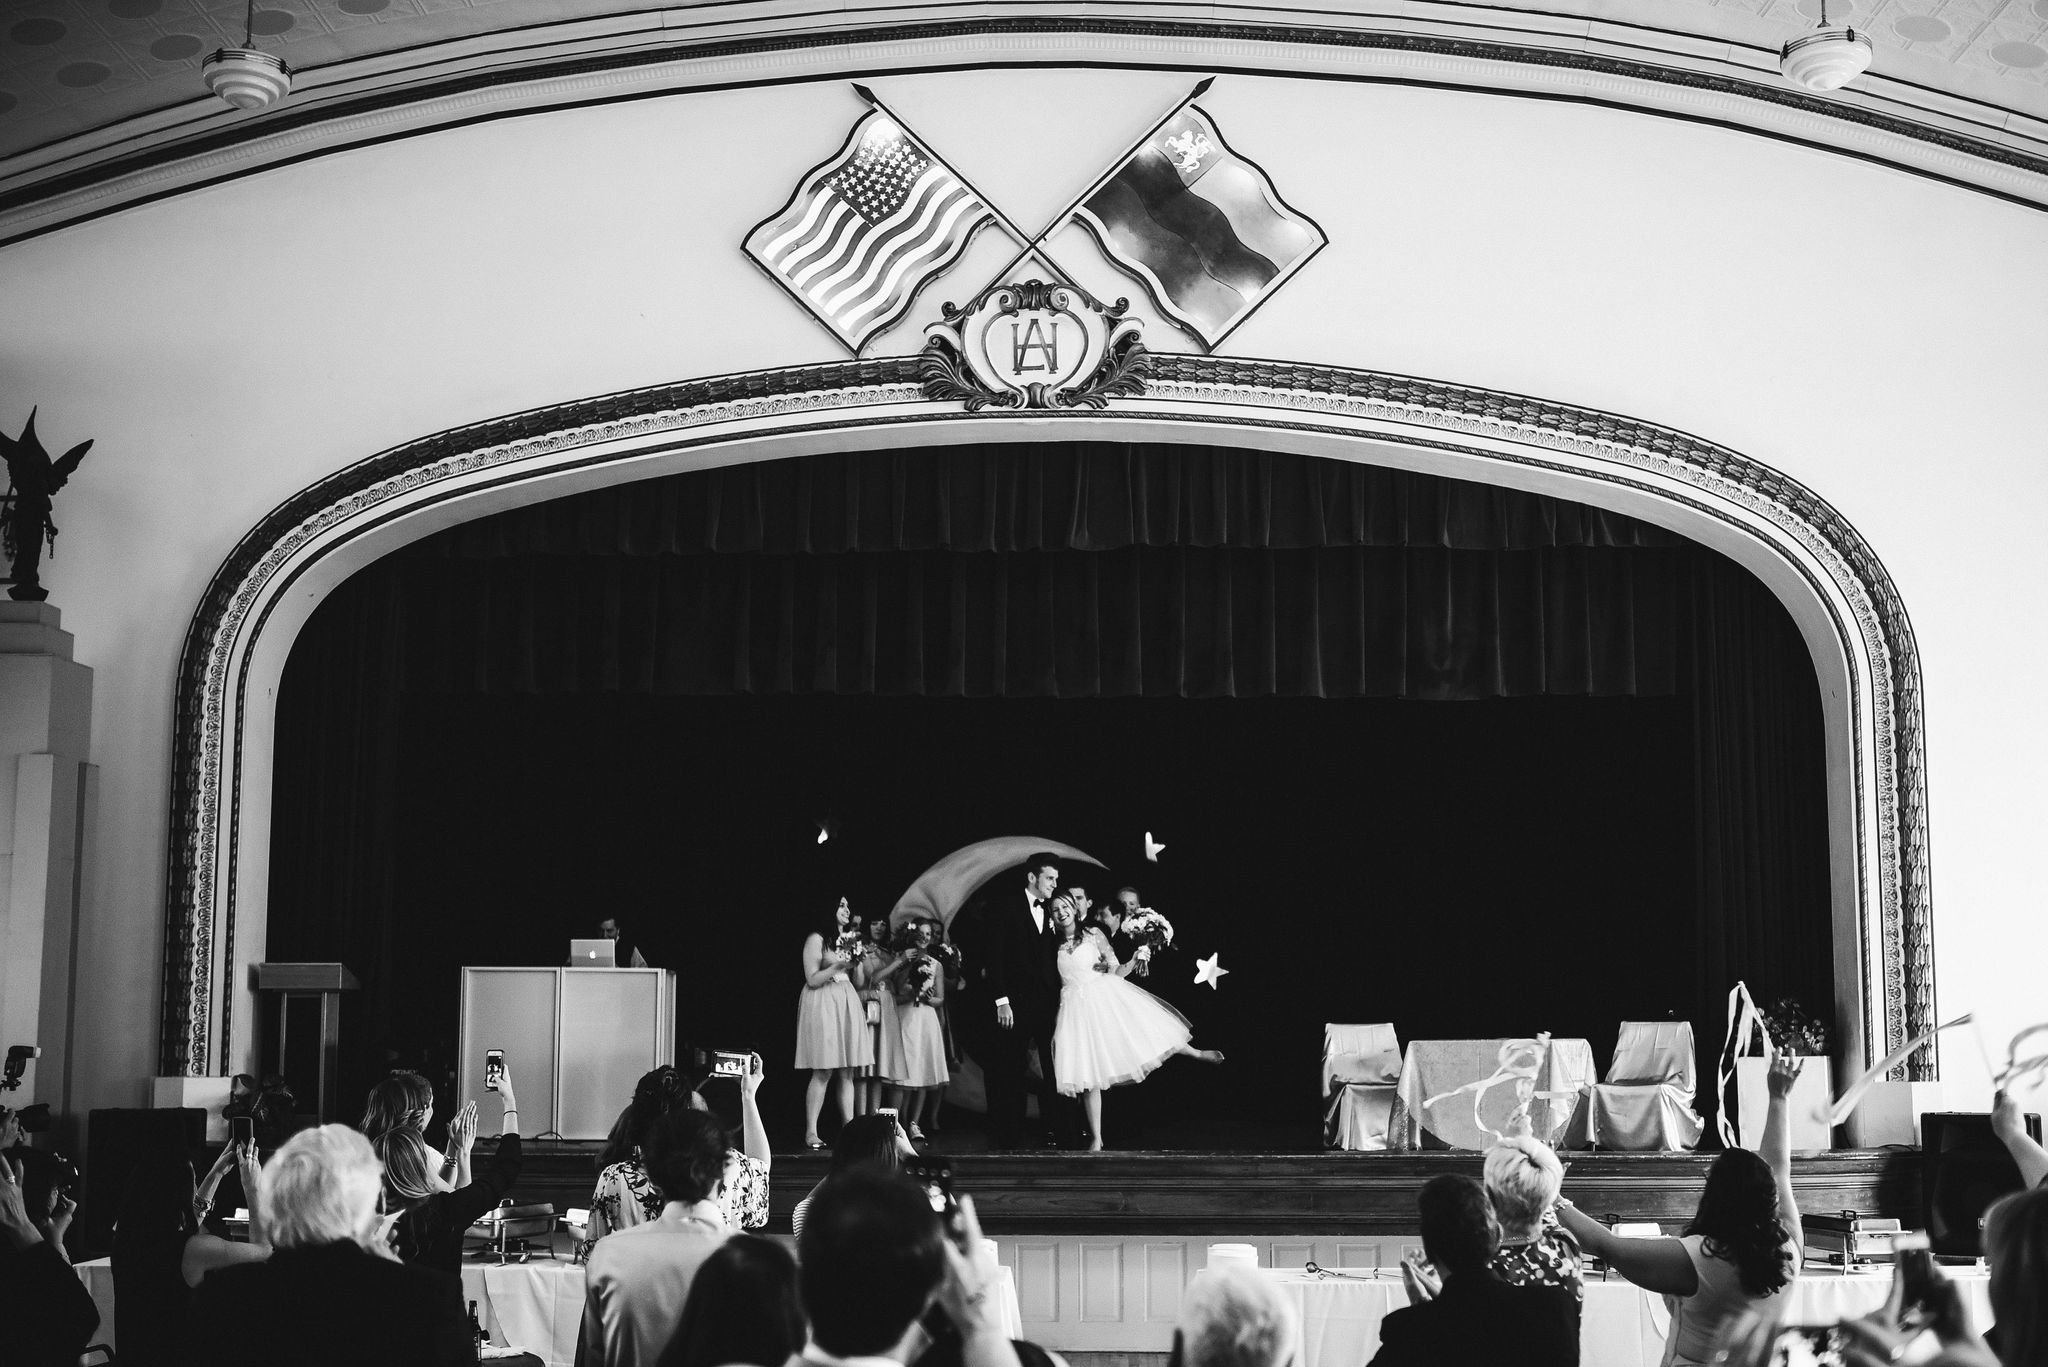 Baltimore, Lithuanian Dance Hall, Maryland Wedding Photographer, Vintage, Classic, 50s Style, Bride and Groom at Wedding Reception, On Stage, Black and White Photo